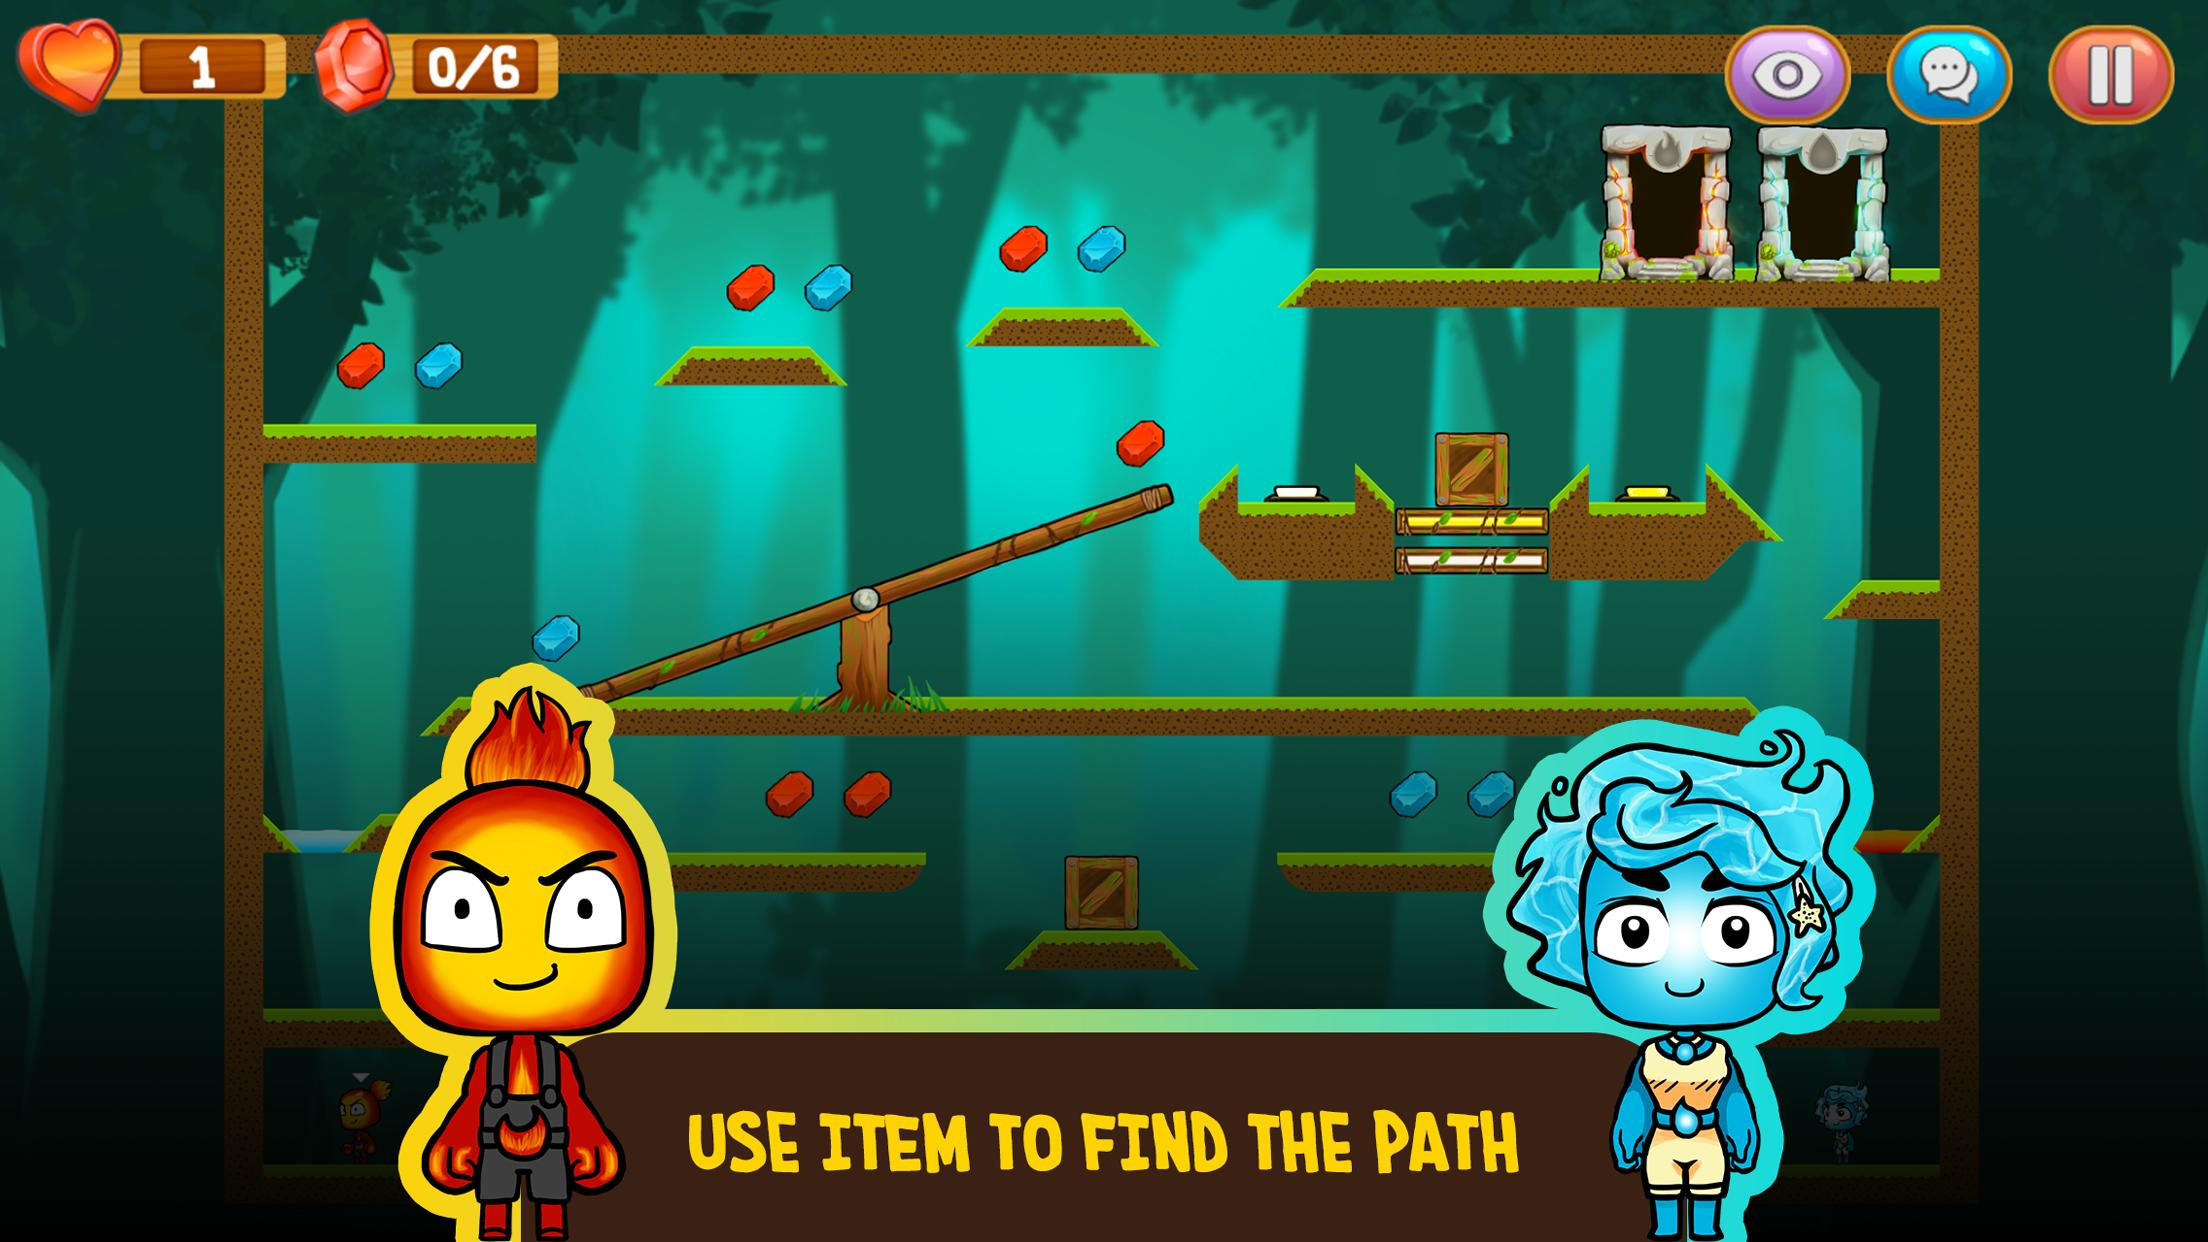 Fire and Water: Online co-op game for boy and girl 2.3.0 Screenshot 4